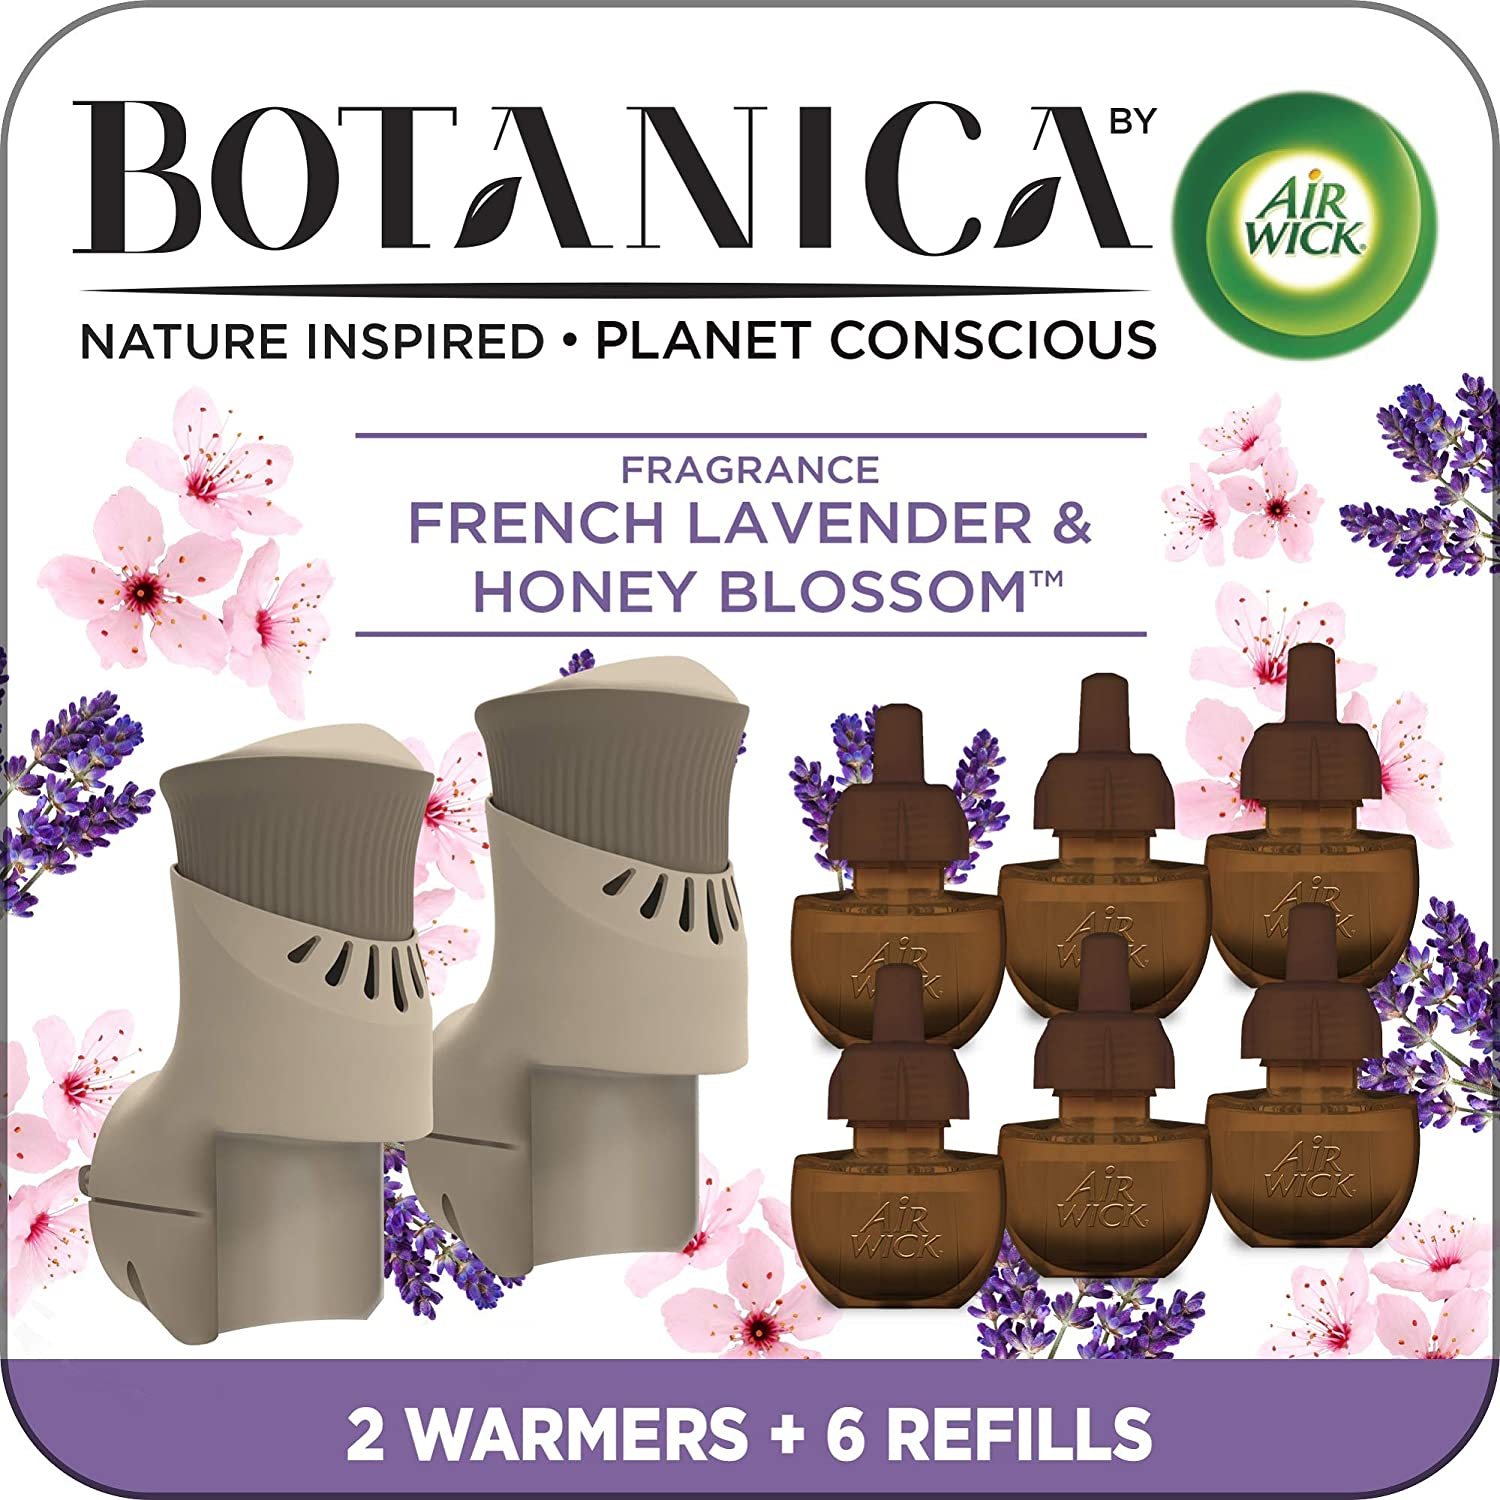 Botanica by Air Wick Plug in Scented Oil Starter Kit, 2 Warmers + 6 Refills, French Lavender and Honey Blossom, Air Freshener, Eco Friendly, Essential Oils